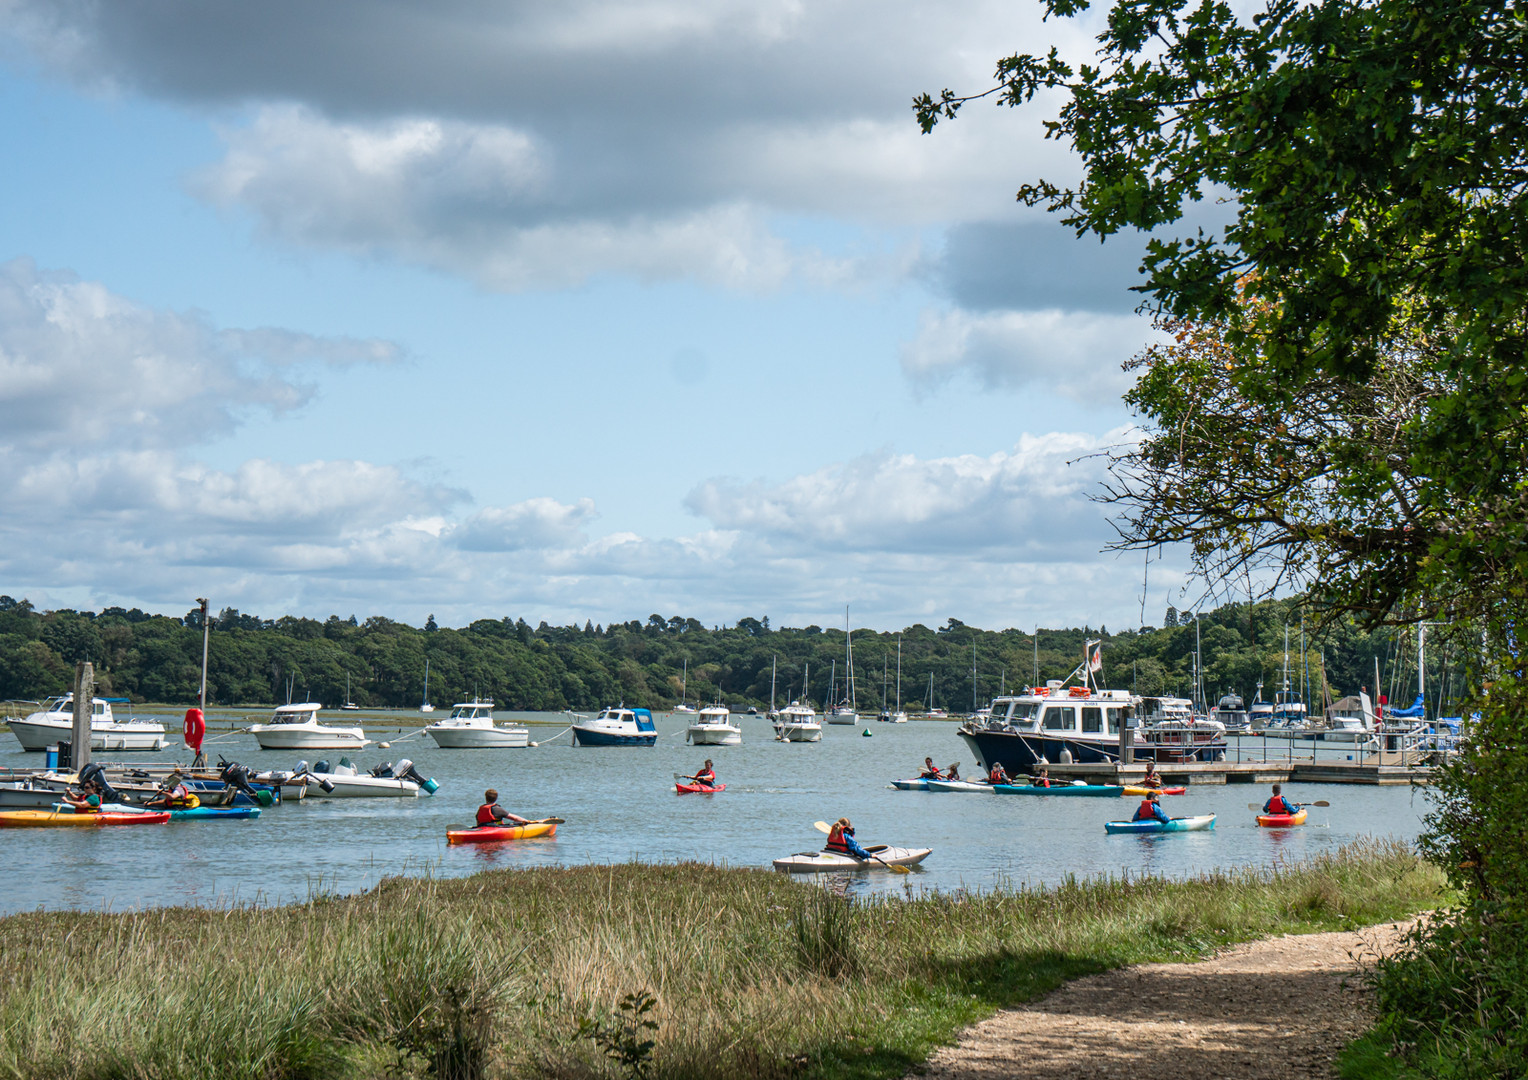 Kayak School, Beaulieu River